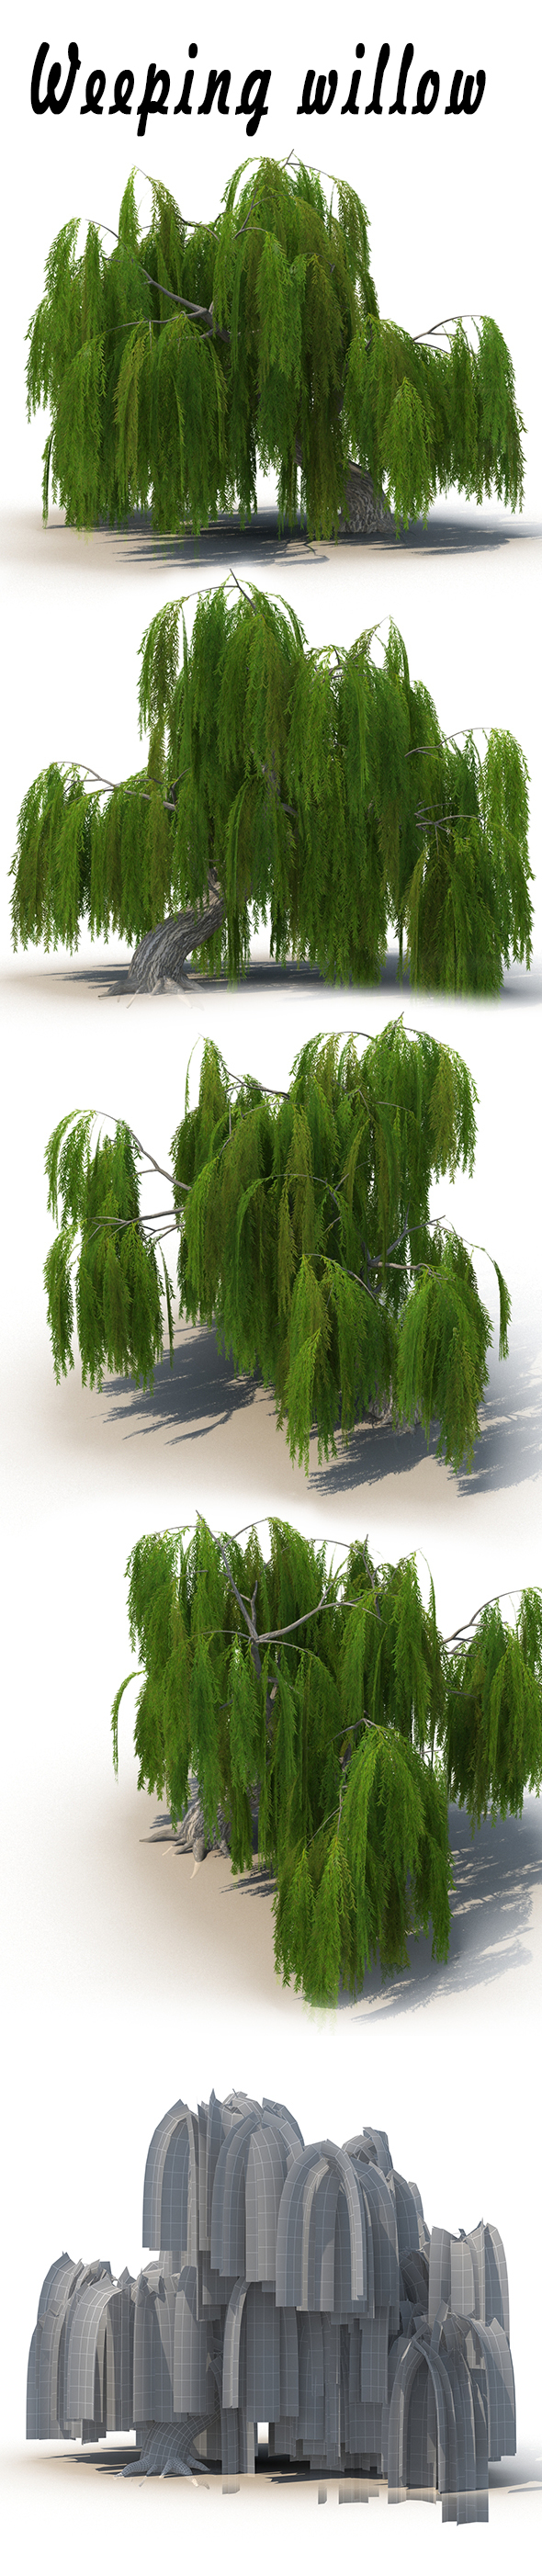 Weeping willow - 3DOcean Item for Sale